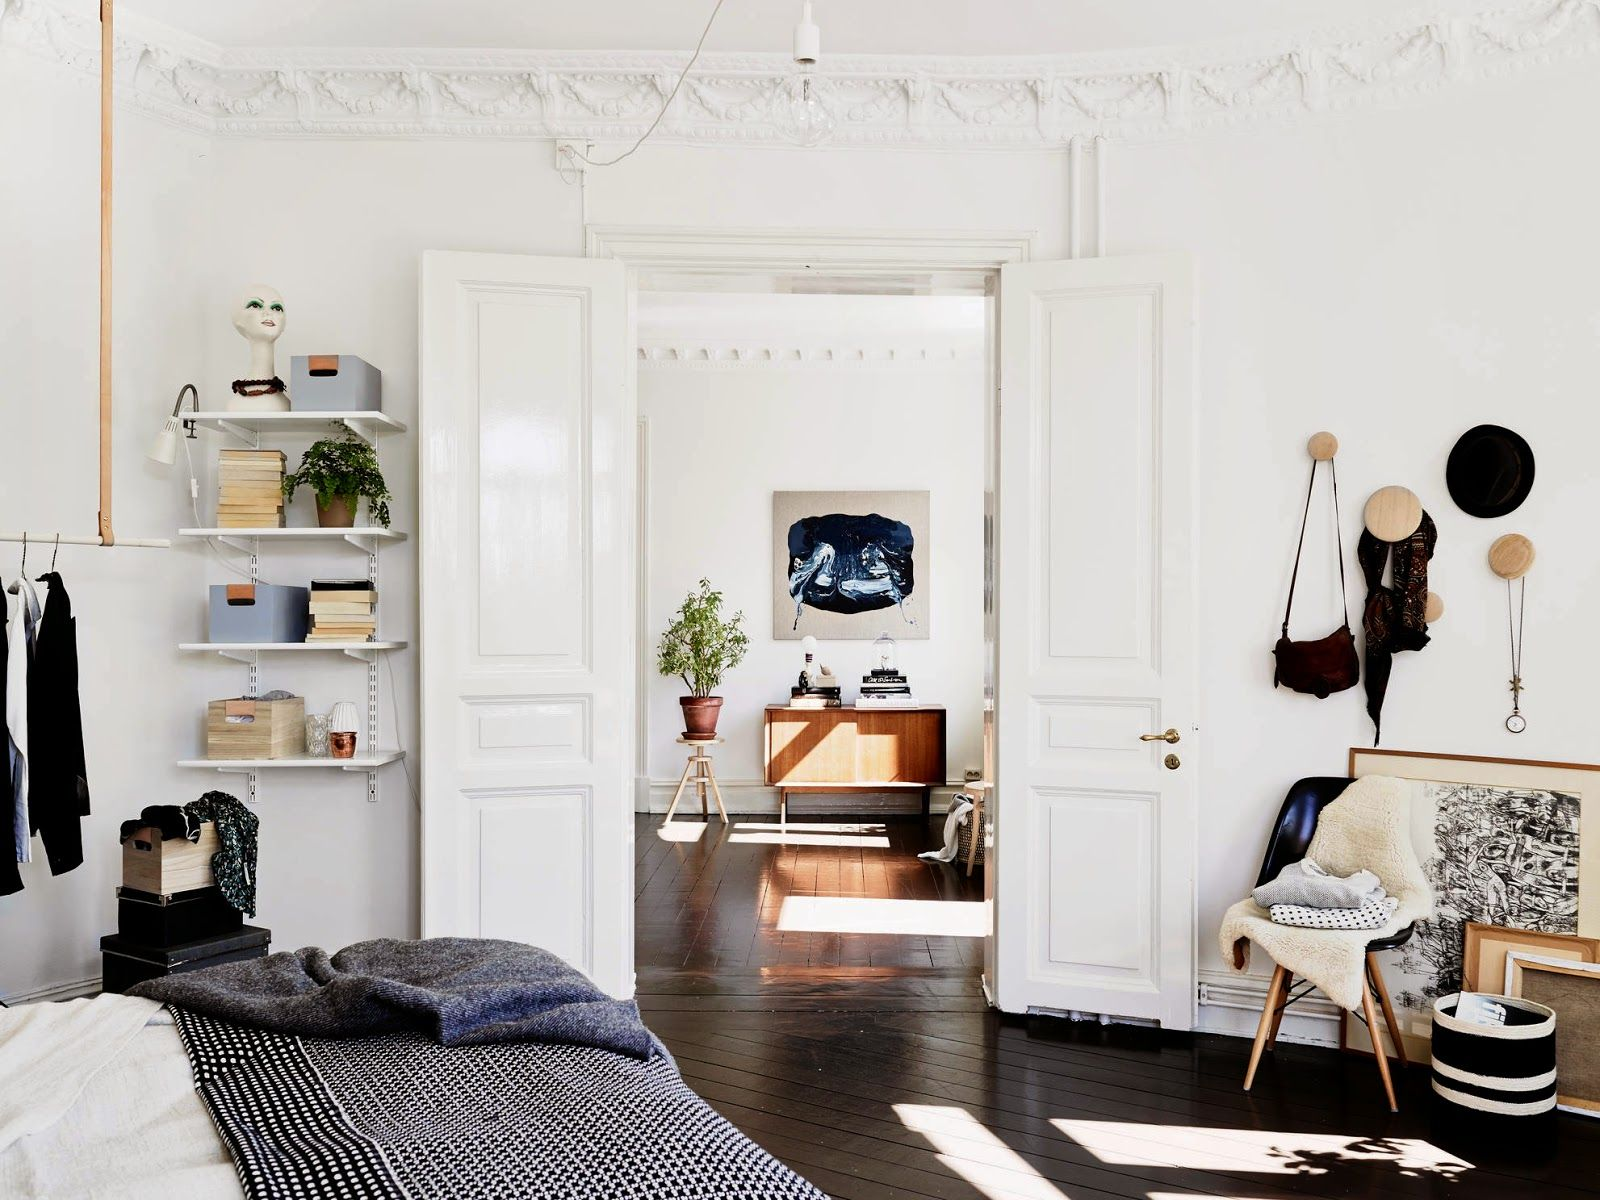 A fabulous black and white Swedish home | Interiors, Black and ...